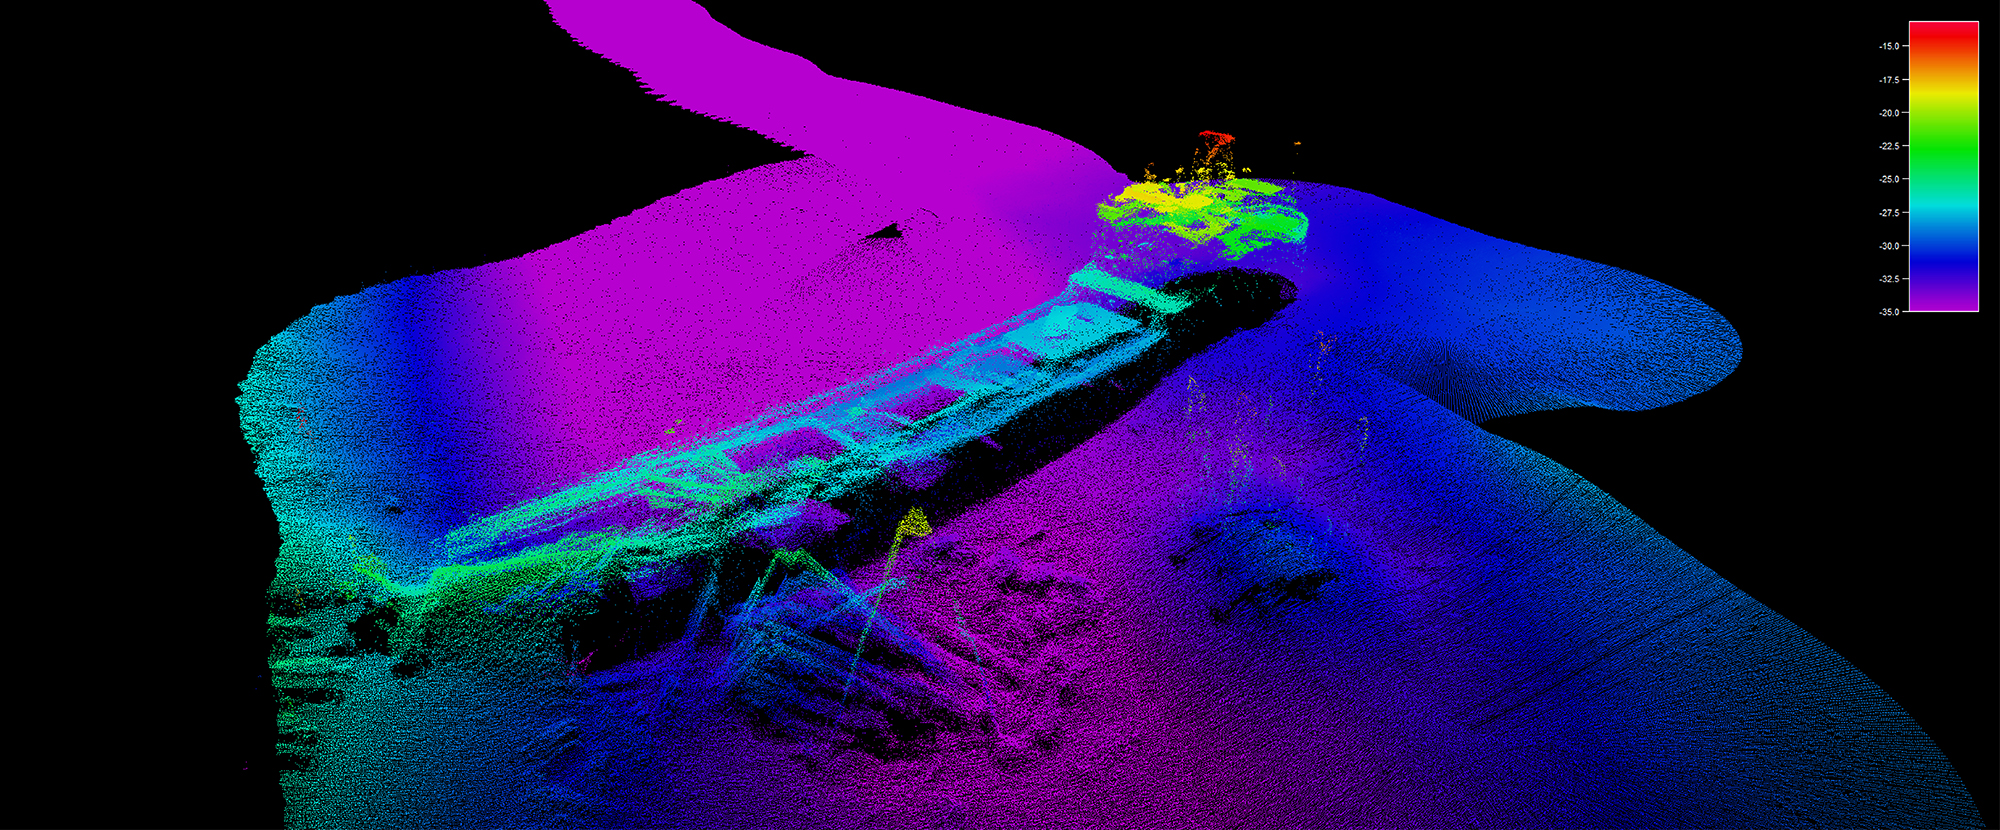 Mapping The Ocean Floor CSIRO - What technology allows us to map ocean floor features